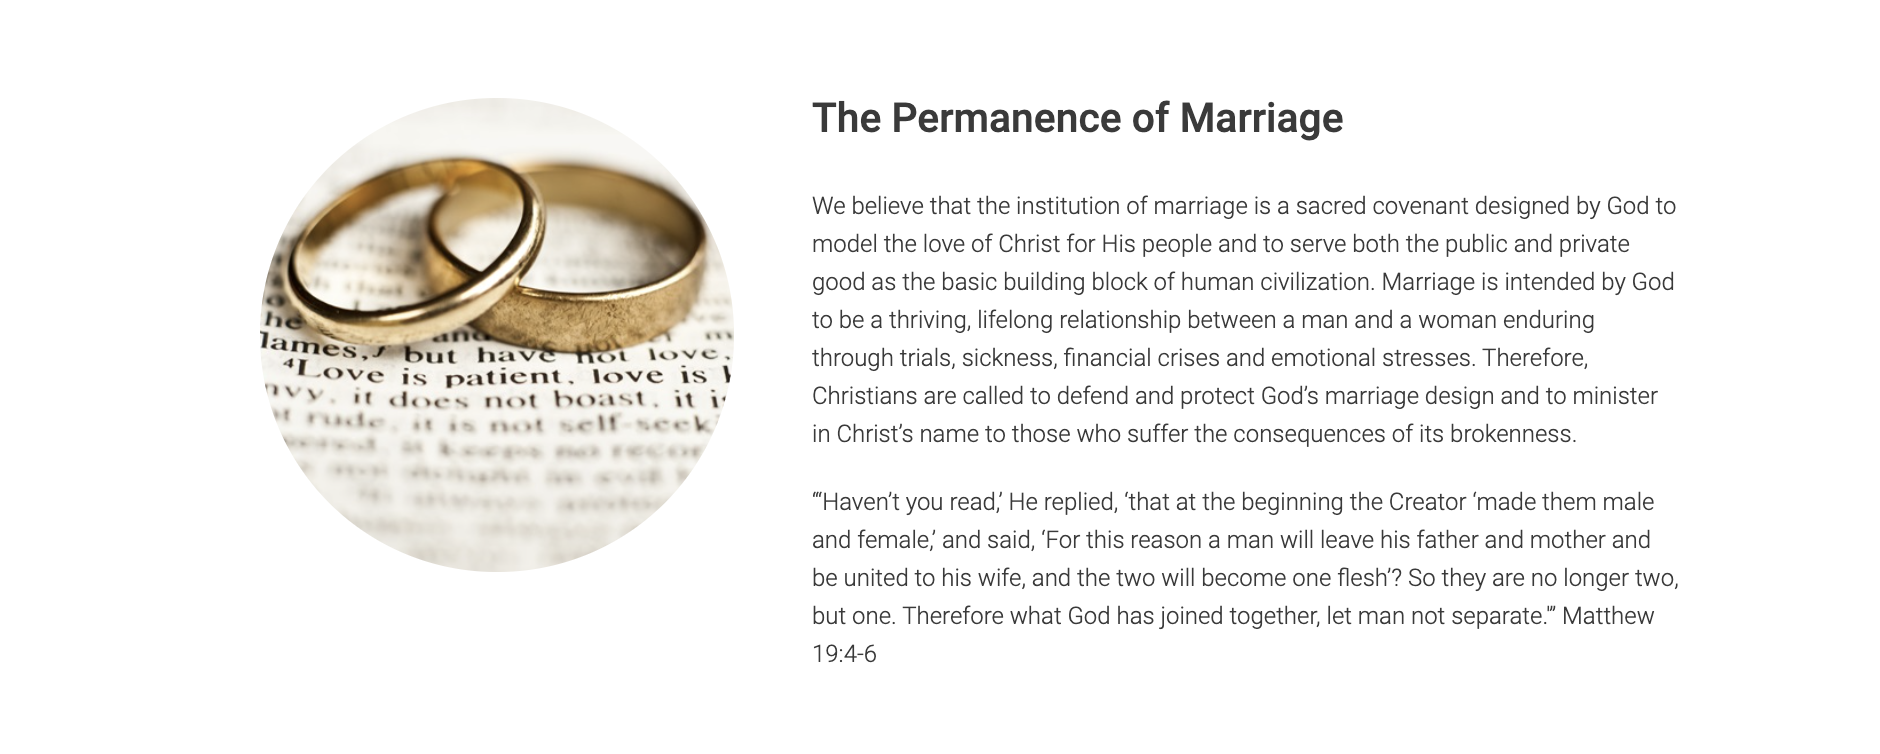 """Focus on the Family Permanence View Statement on their """"Foundational Values"""" and Vision Page."""